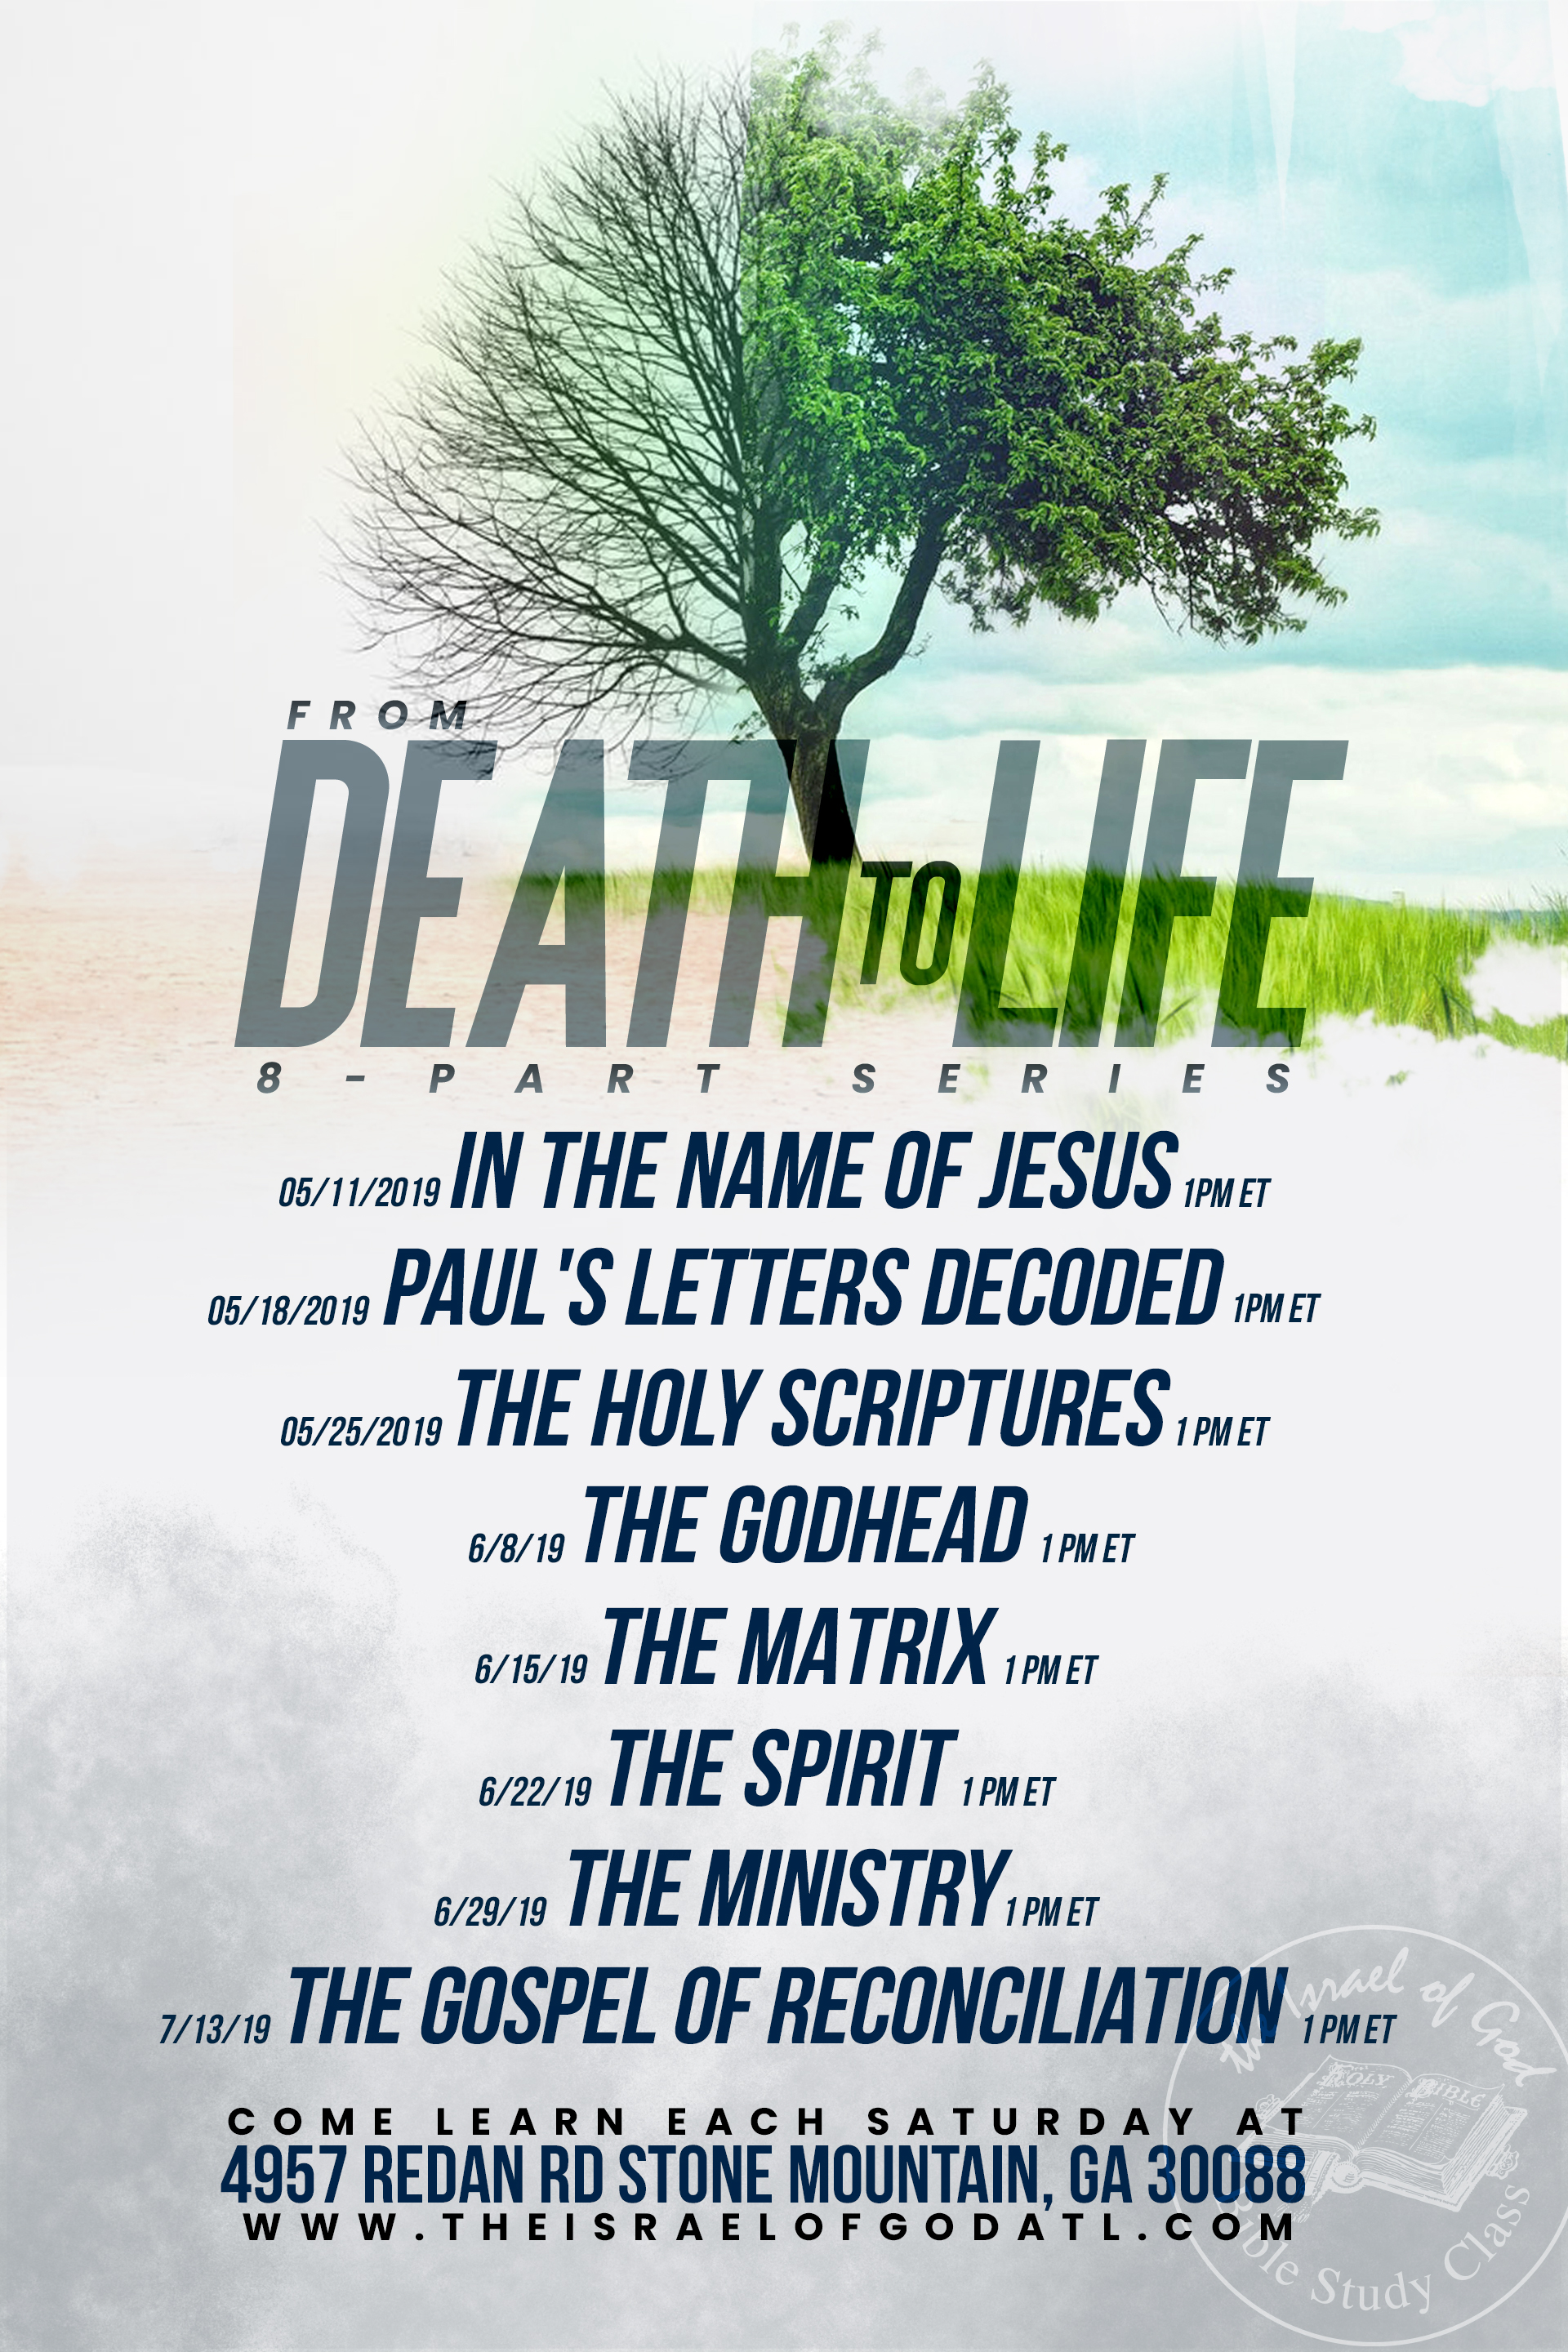 From Death to Life: 8-Part Series | The Israel of God